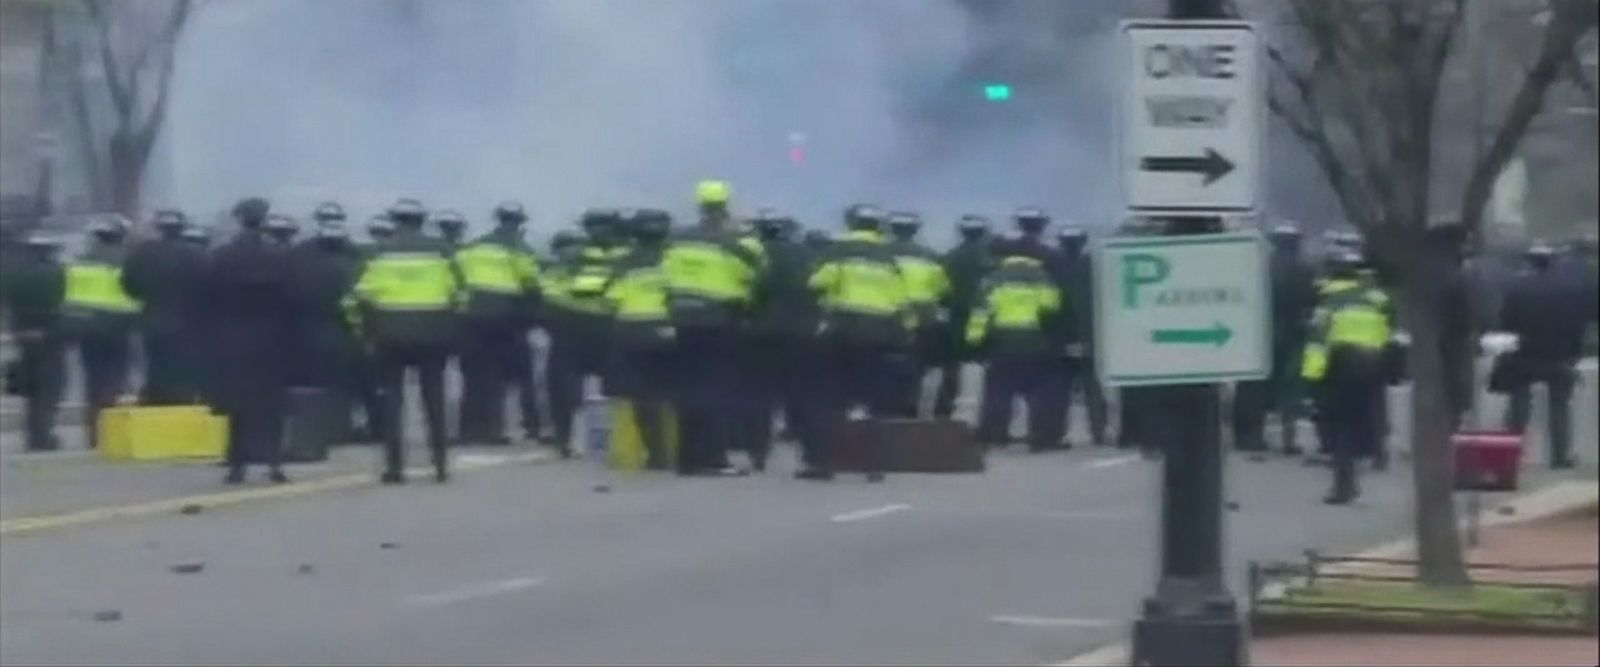 VIDEO: Inauguration Protests Heat Up as Police Employ Tear Gas Against Rock-Throwing Activists